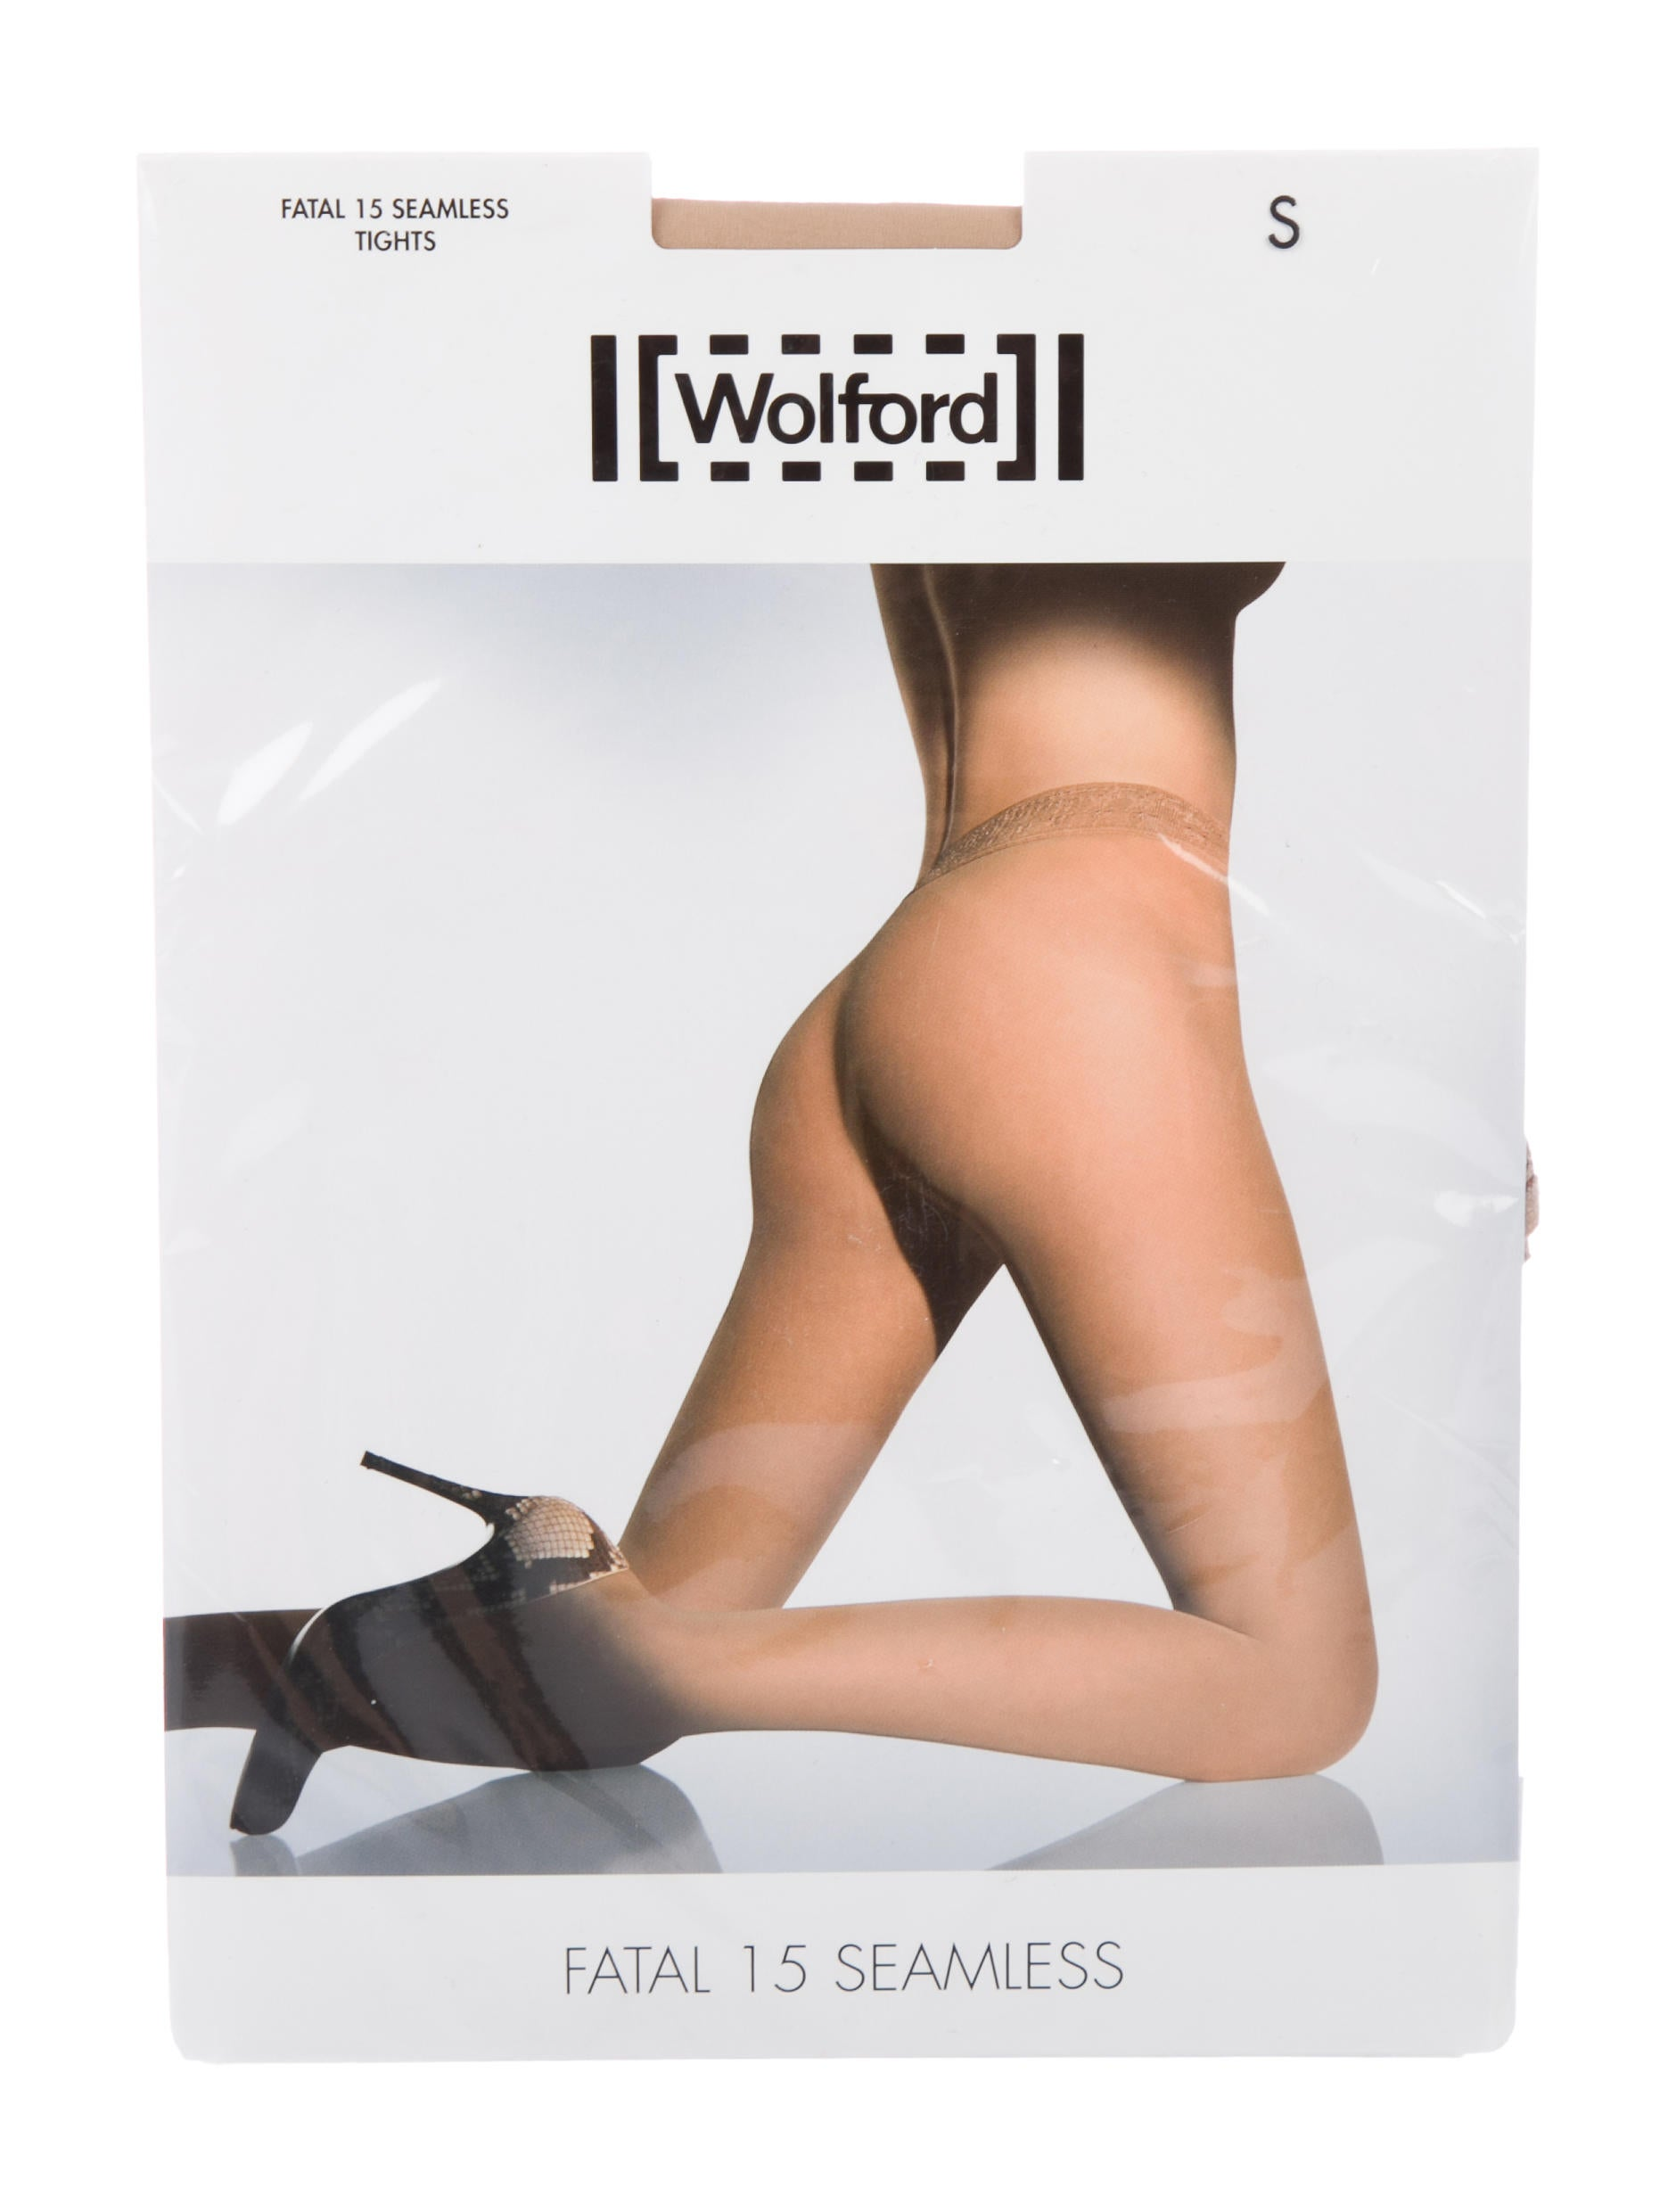 a4d65c41e4cf1 Wolford Fatal 15 Seamless Tights w/ Tags - Accessories - WWF22400 ...